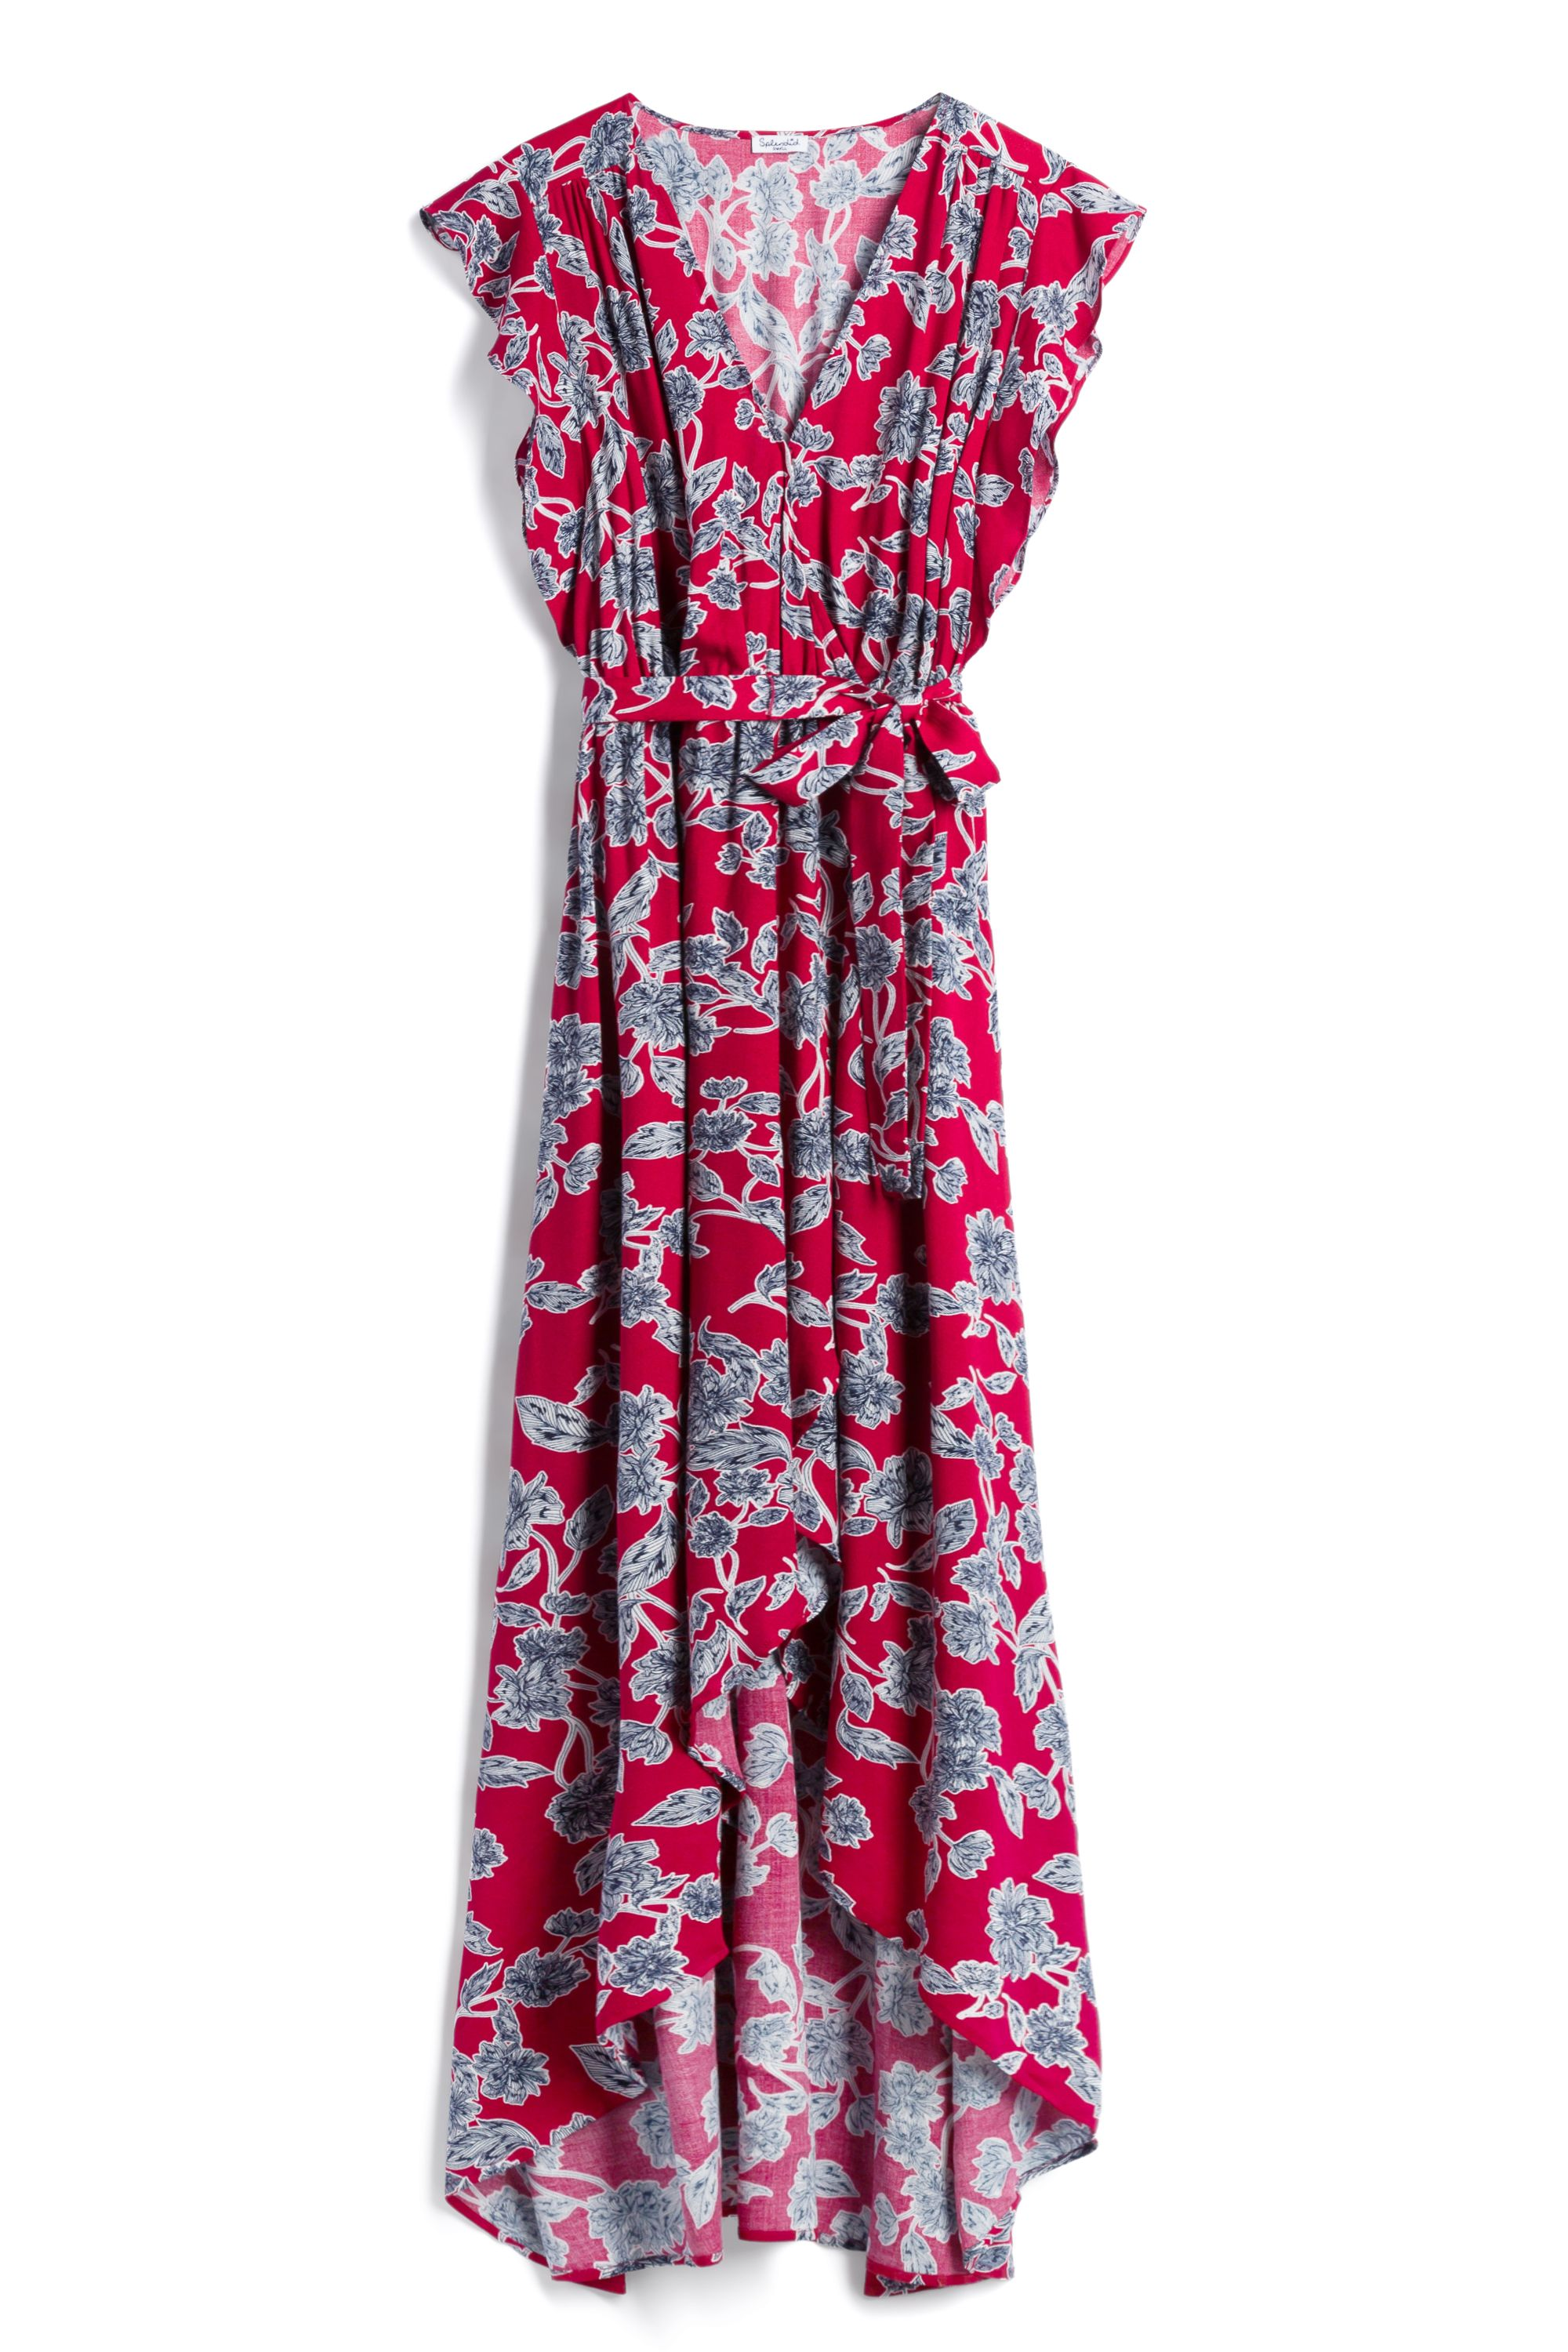 a35ae0a76db Floral maxi dress from Stitch Fix.  ad    When you sign up for Stitch Fix